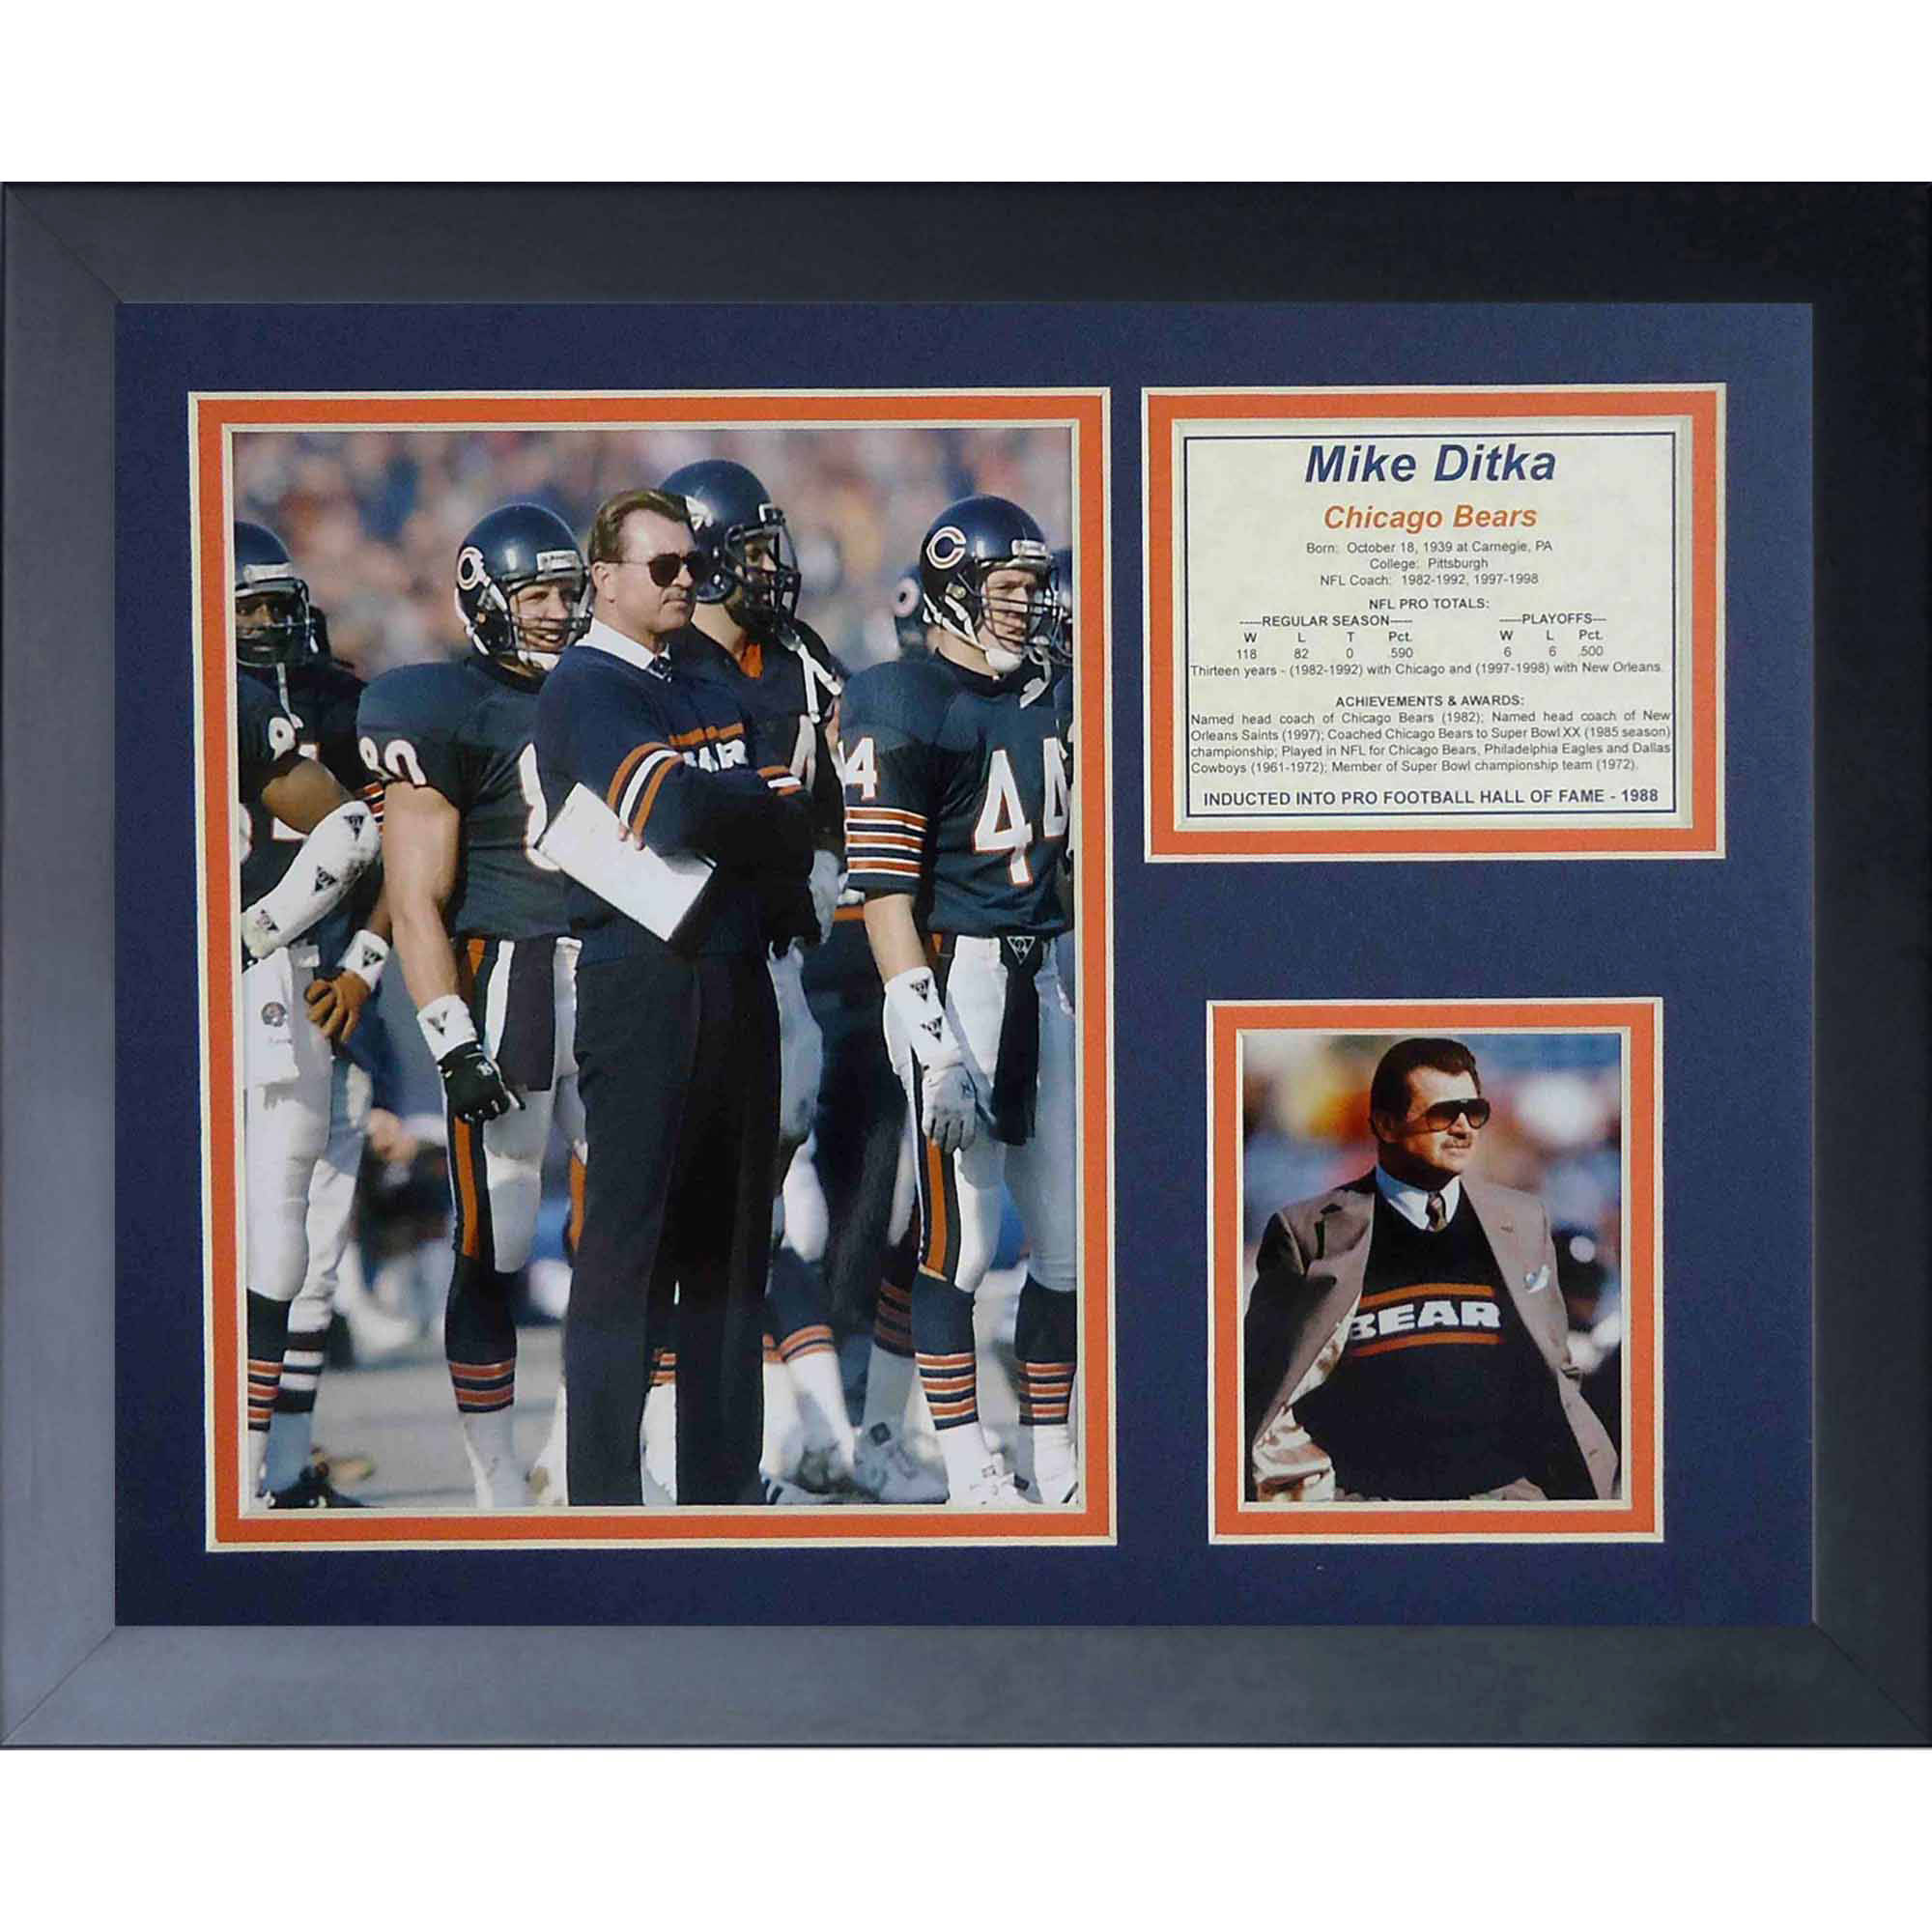 """Legends Never Die """"Mike Ditka Coach"""" Framed Photo Collage, 11"""" x 14"""" by Legends Never Die, Inc"""